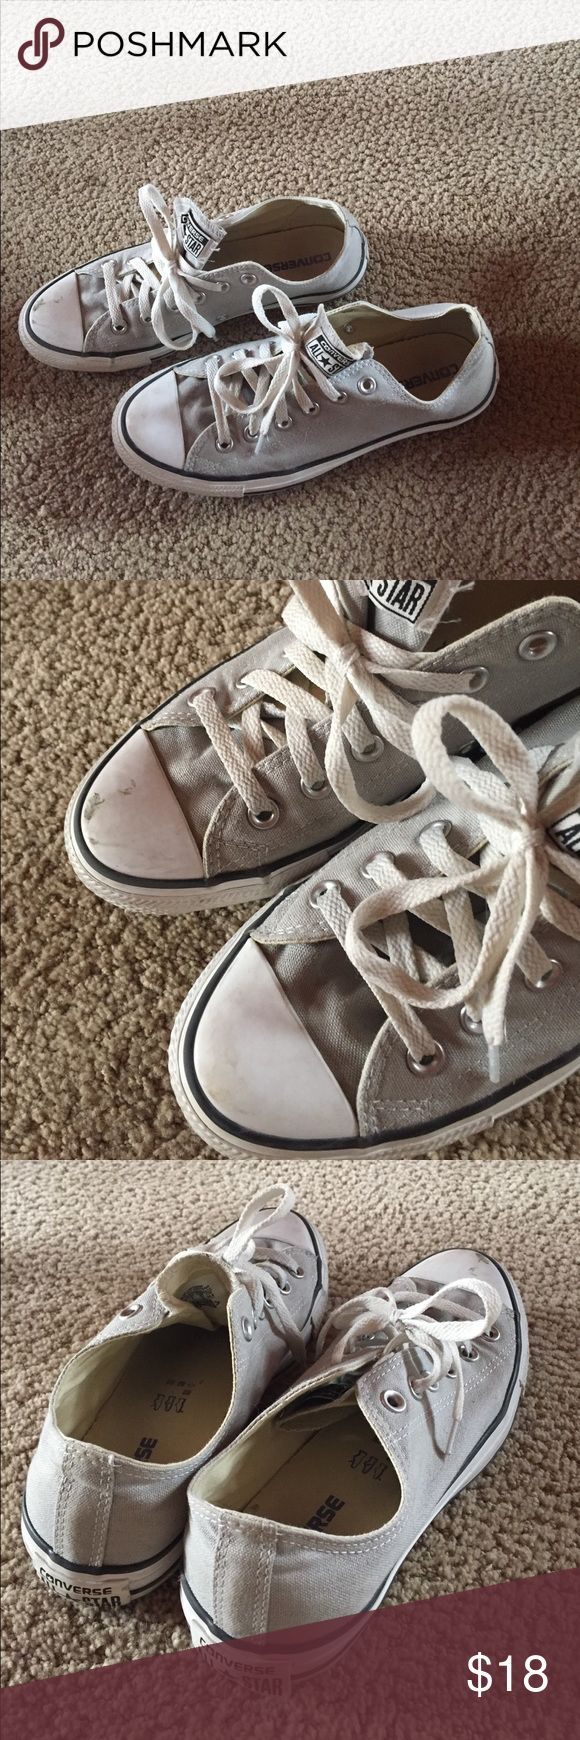 Women's converse size 9 Right shoe does have scuff mark on toe. Could be easily covered with white finger nail polish, etc. Converse Shoes Sneakers